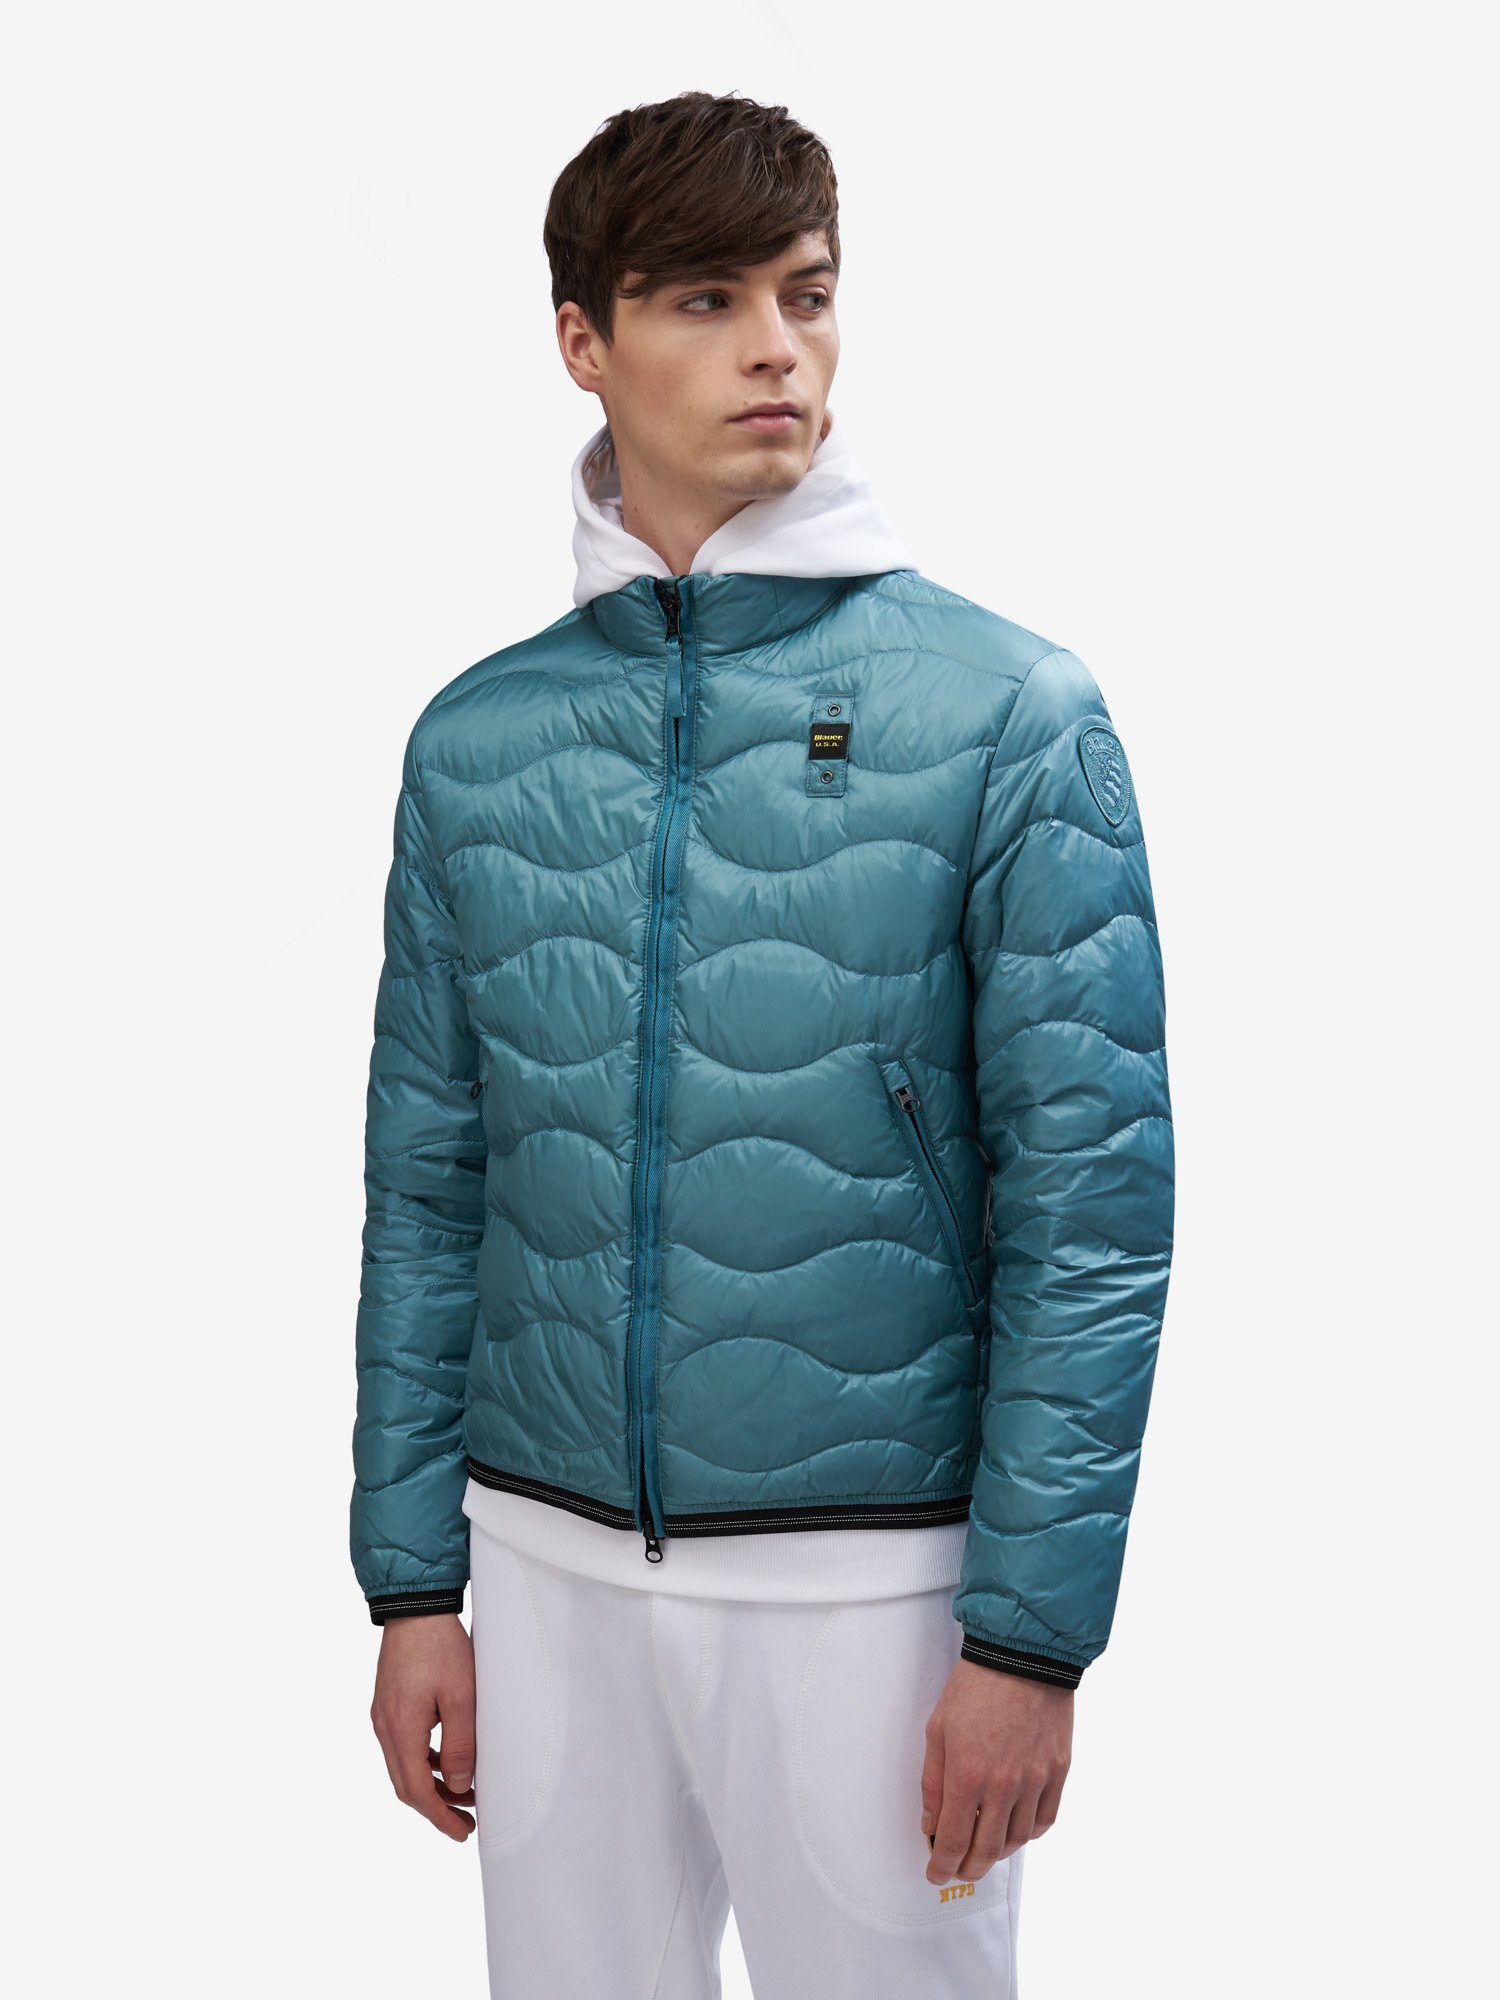 Blauer - BRYANT HORIZONTAL WAVE-QUILTED DOWN JACKET - Blue Ocean - Blauer